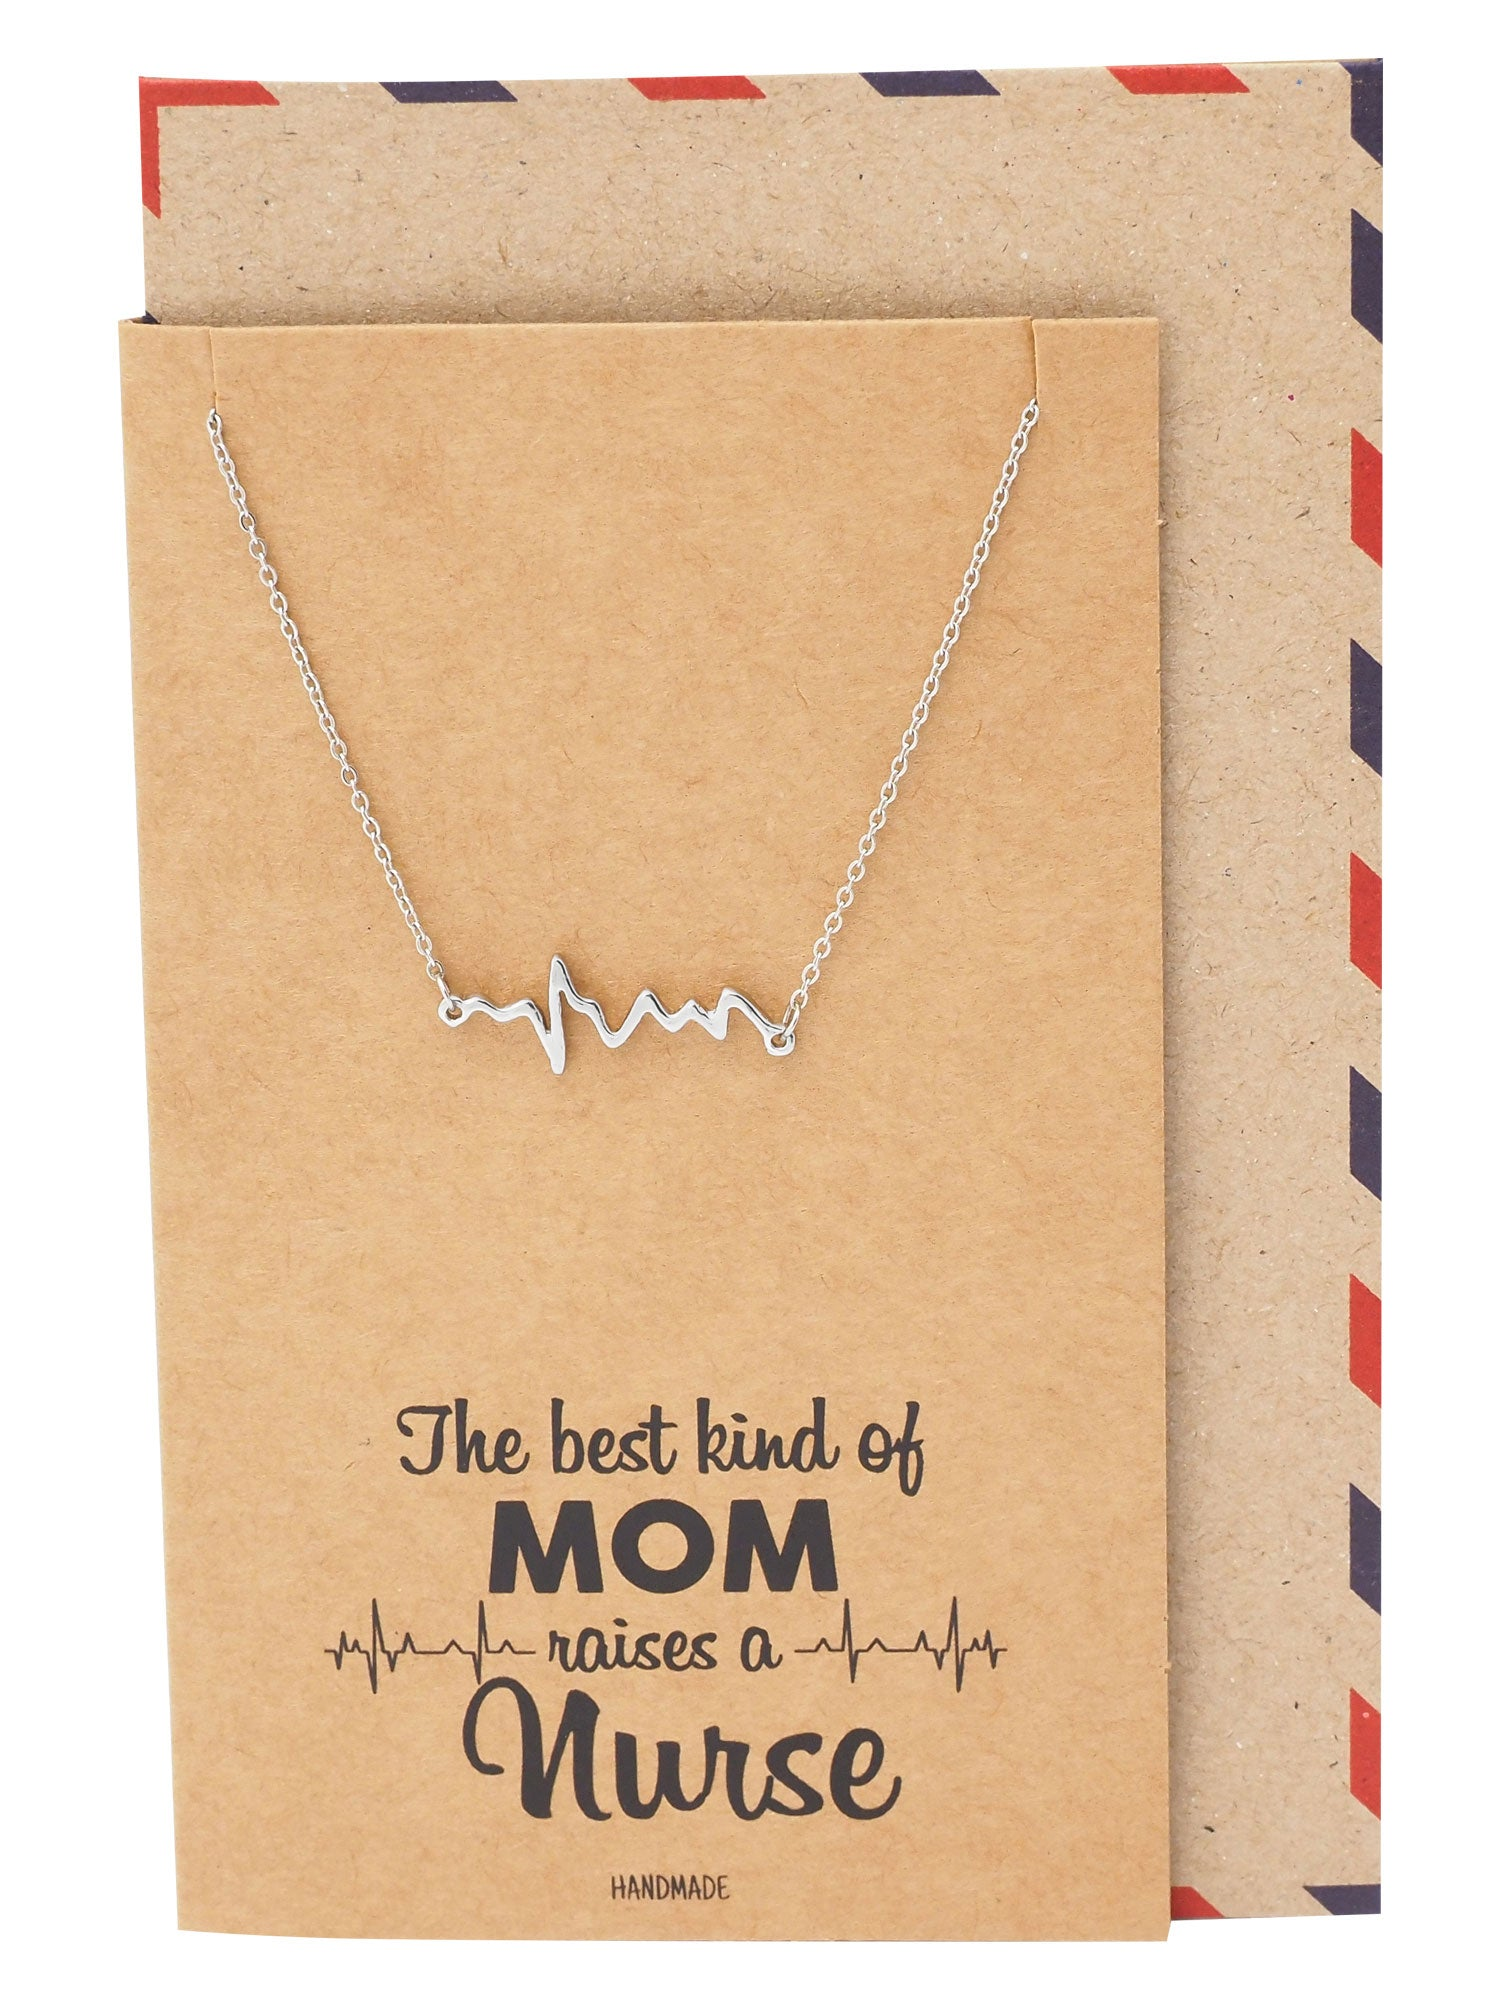 Naiobe Electrocardiogram Heartbeat Necklace, Nurse Gifts, Gifts for Women with Greeting Card